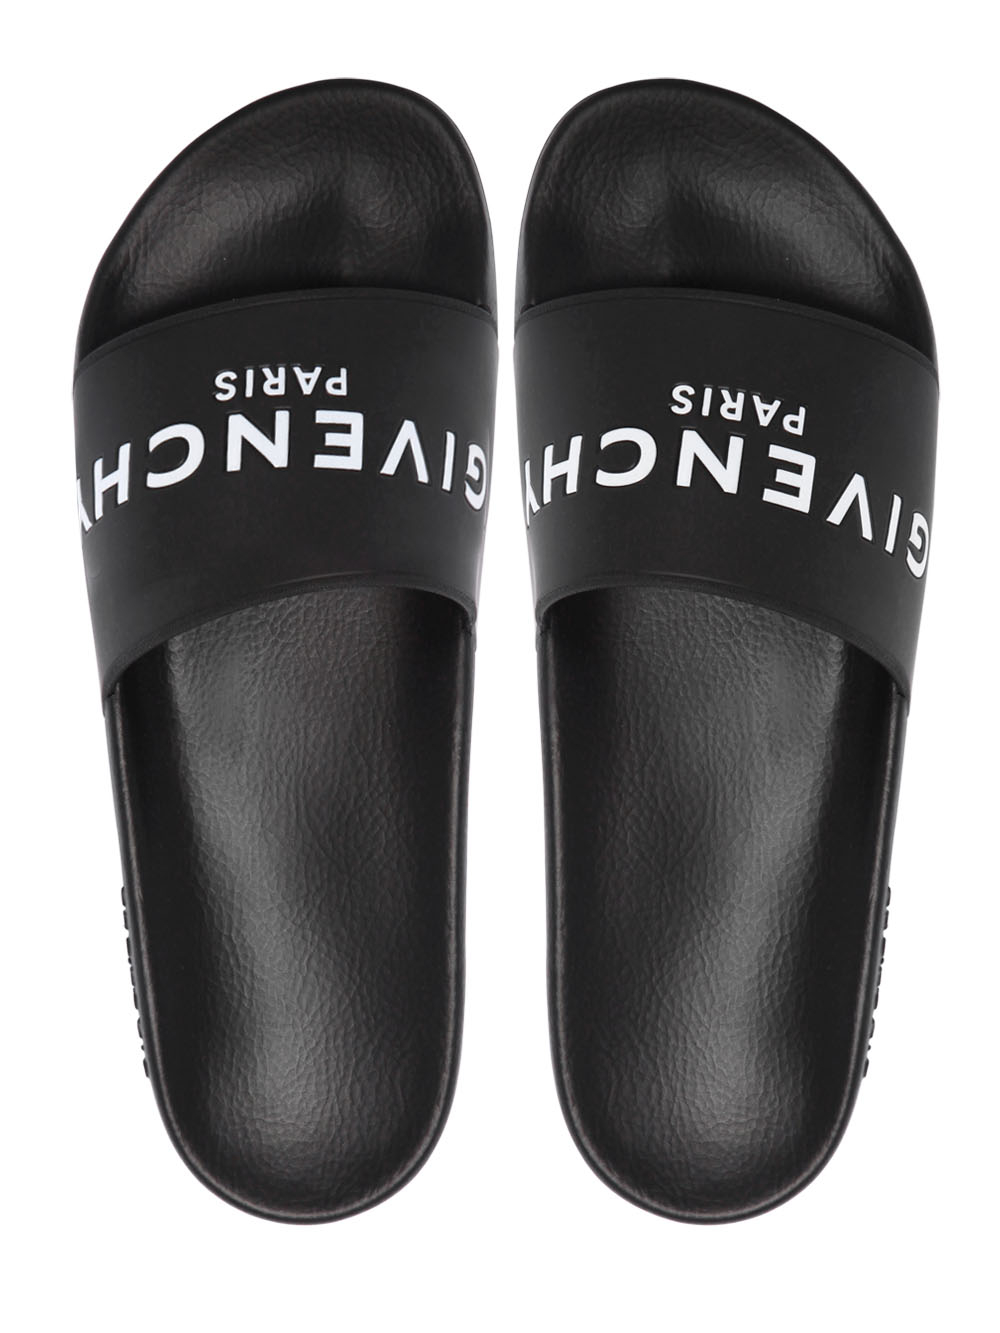 Givenchy Logo Rubber Slide Sandals In Black For Men Lyst